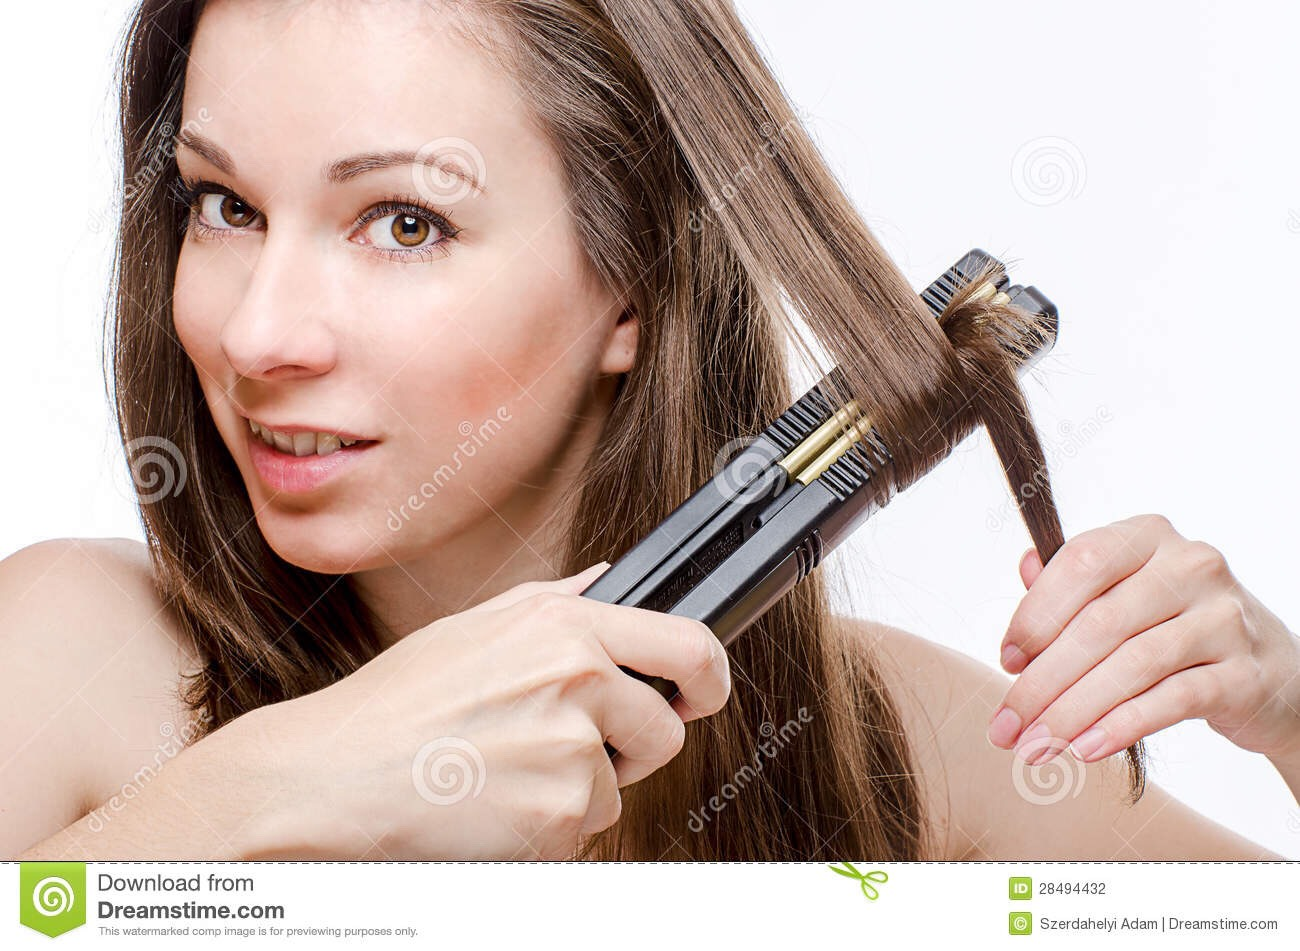 Step one: part your hair  Step two: rotate the straightener completely around   Step three: enjoy your curls!